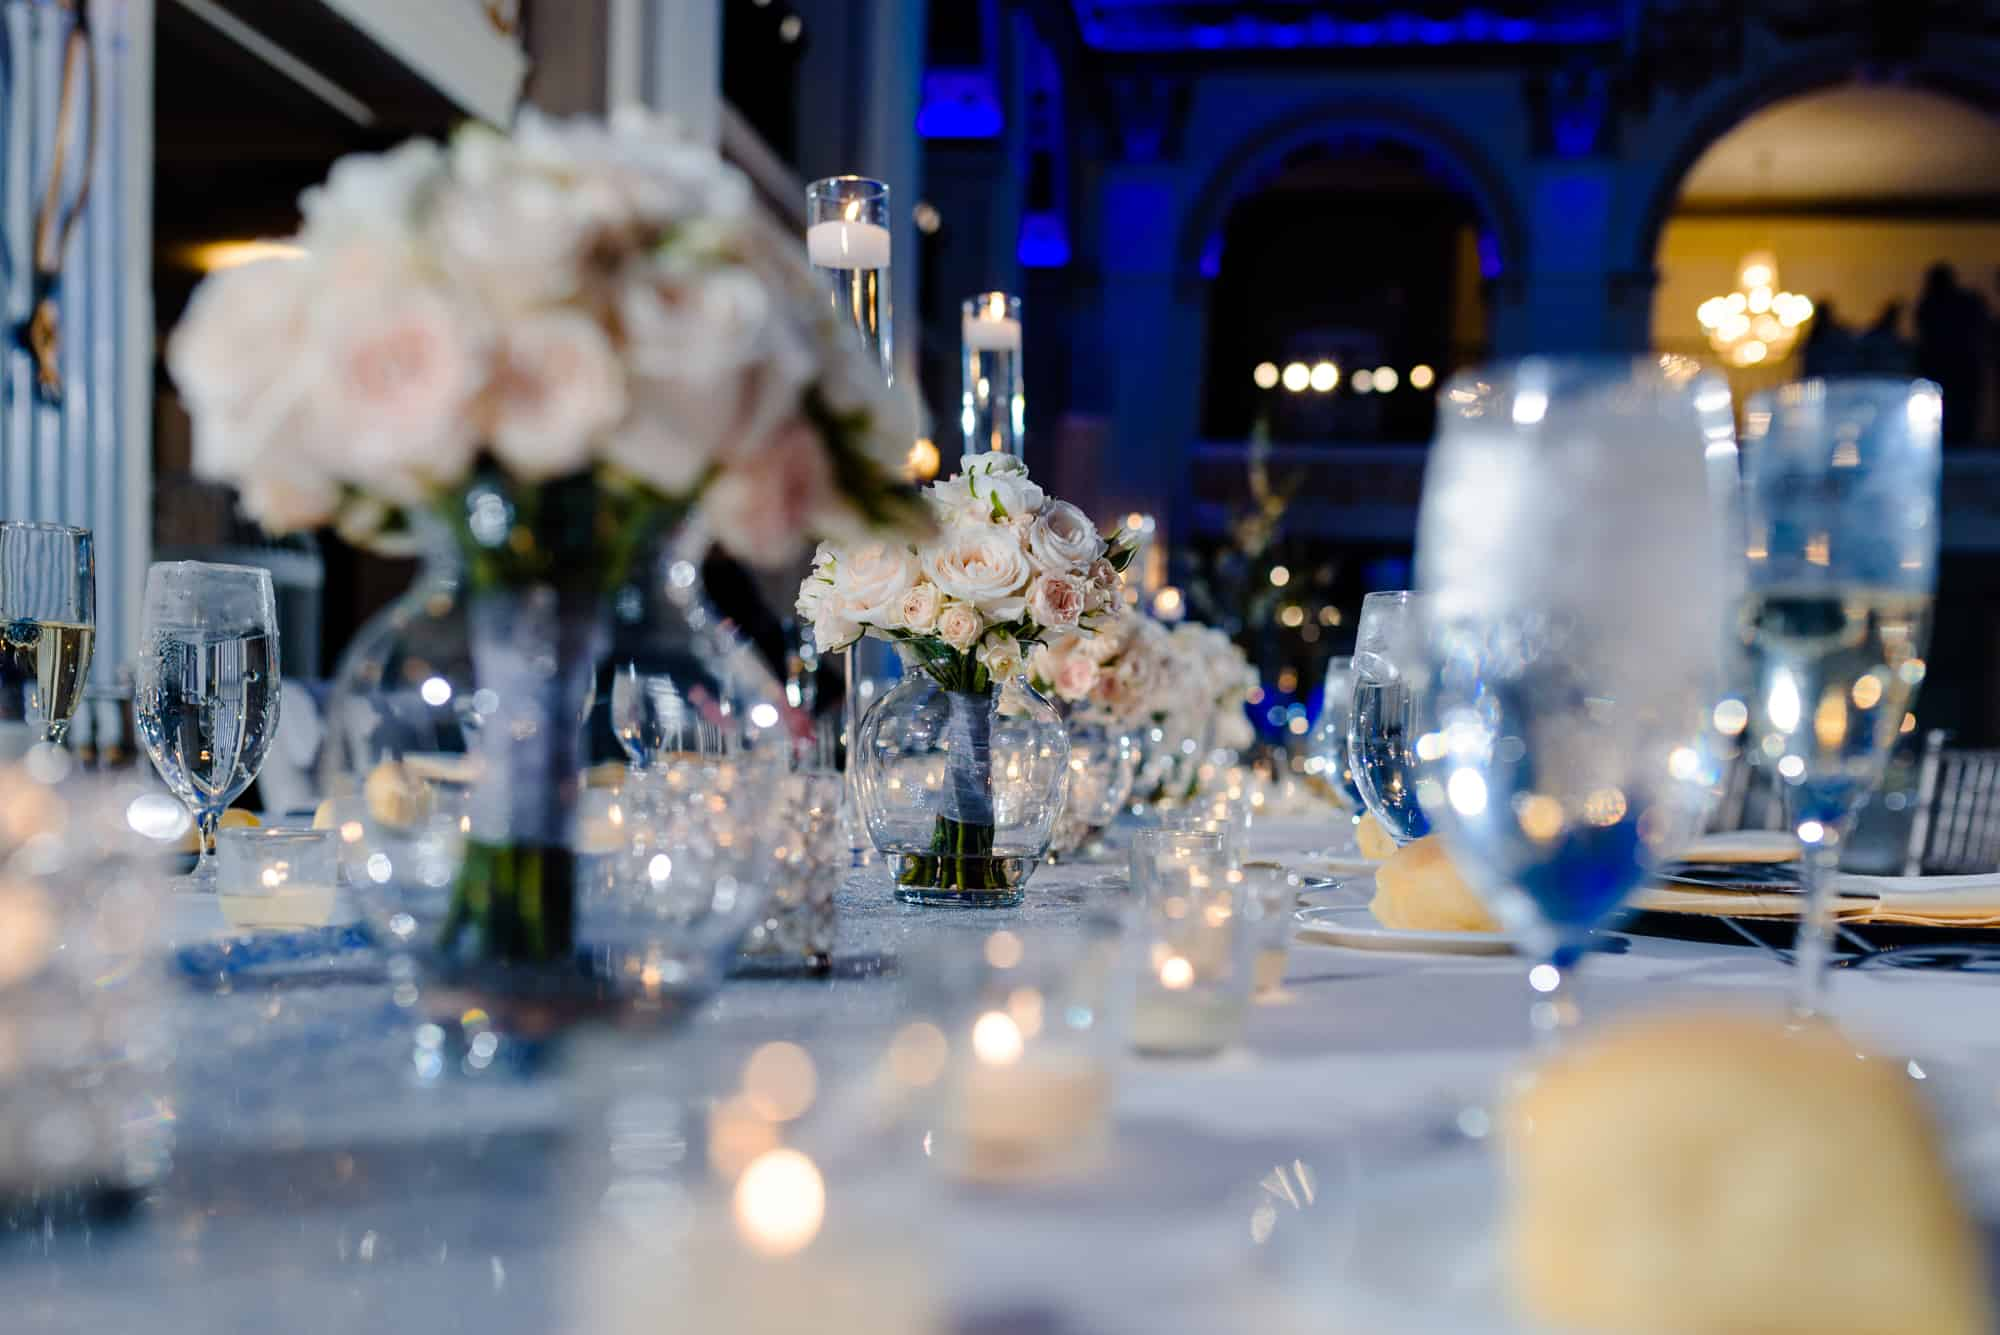 Image of wedding reception centerpiece at the Ballroom at the Ben